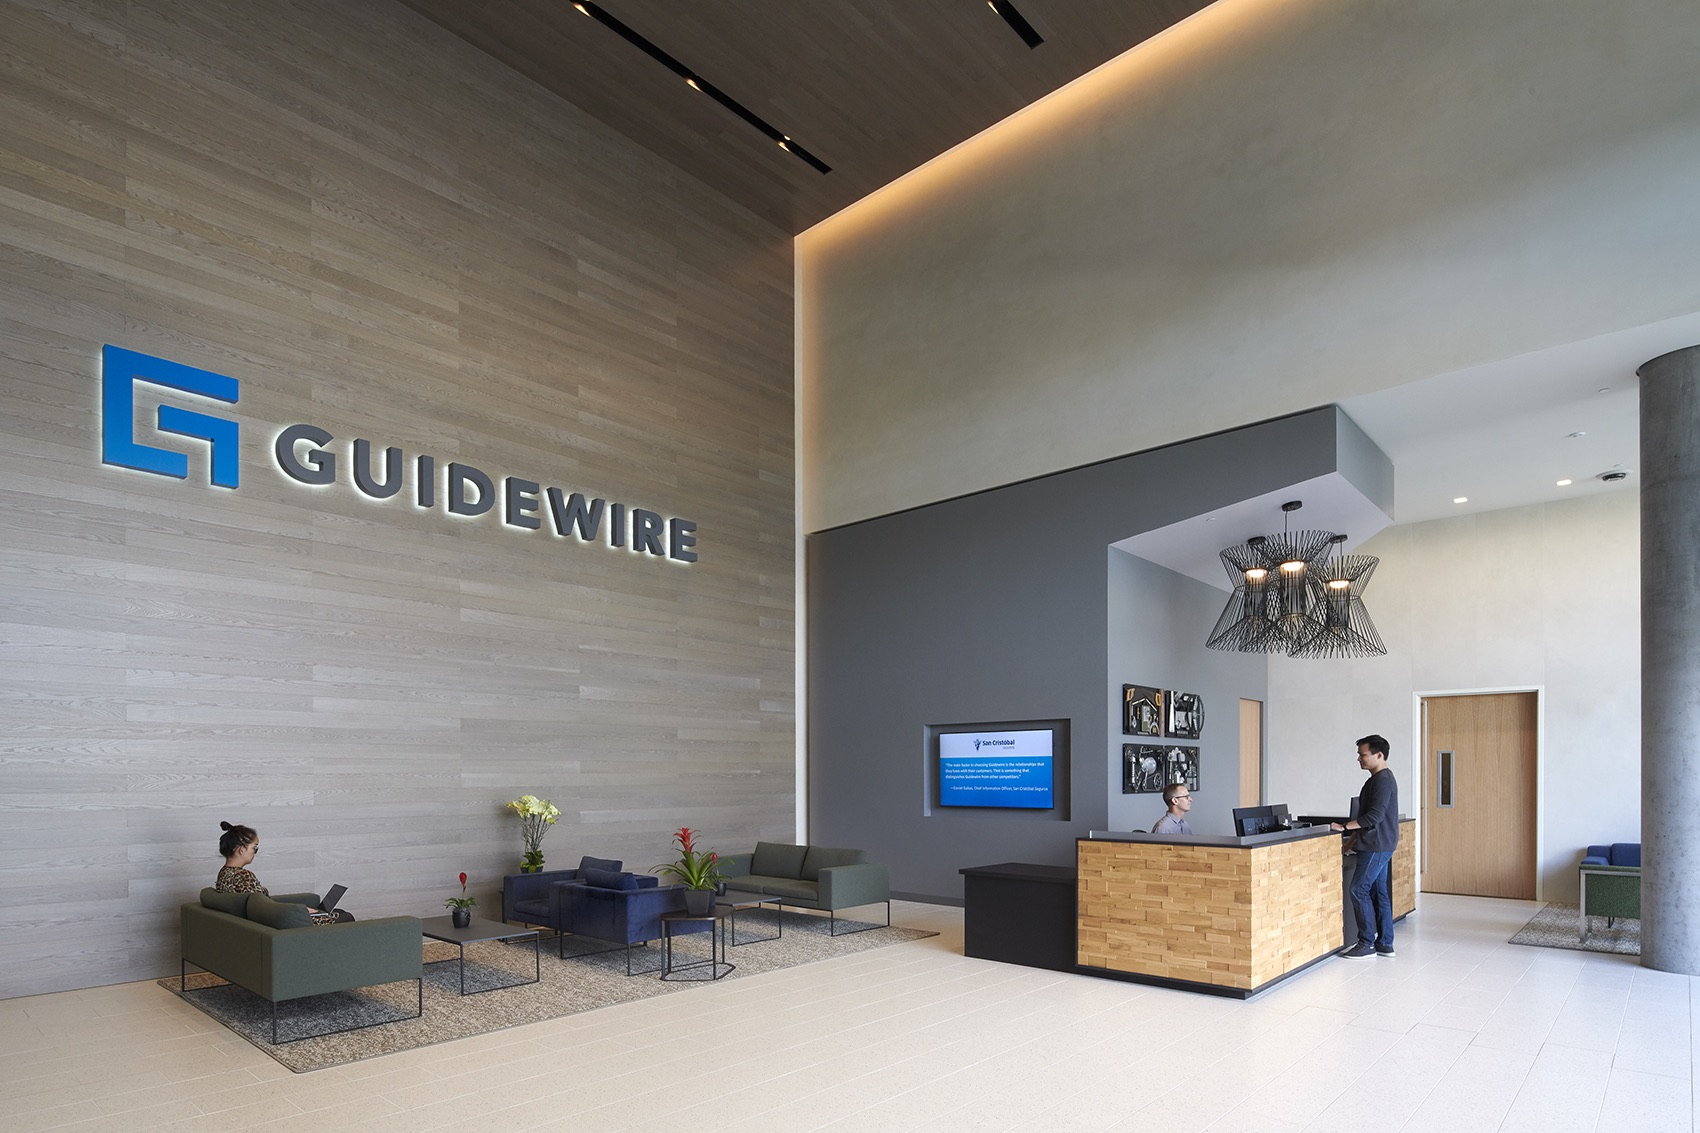 guidewire-san-mateo-office-1